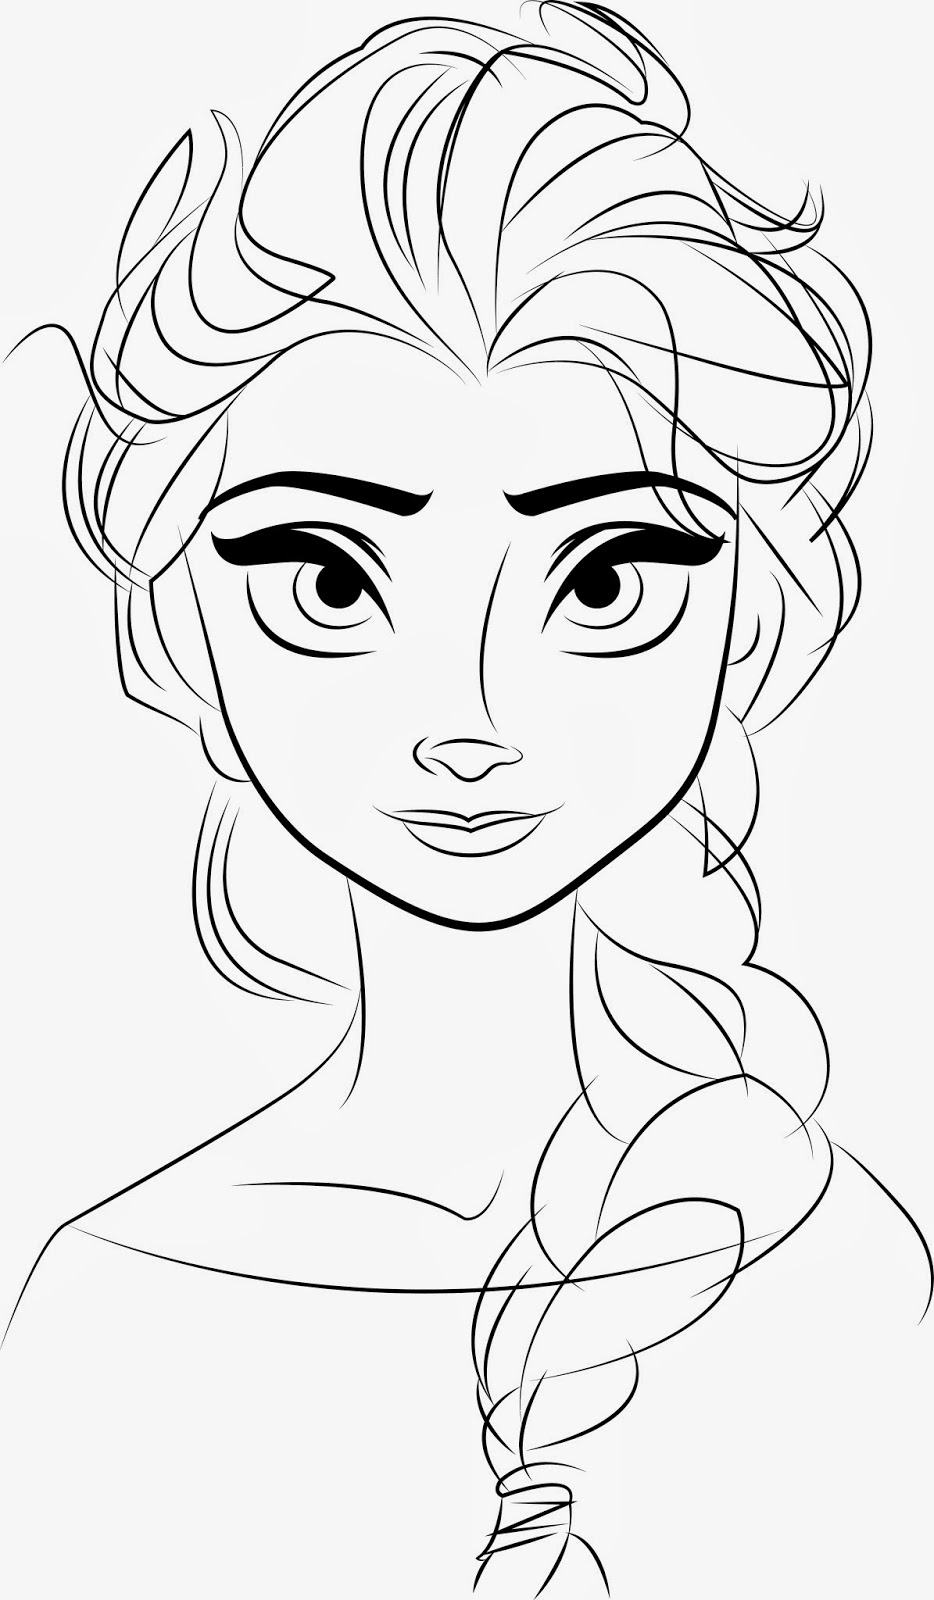 elsa pictures to color elsa frozen coloring sheet coloring pages printable for pictures to elsa color